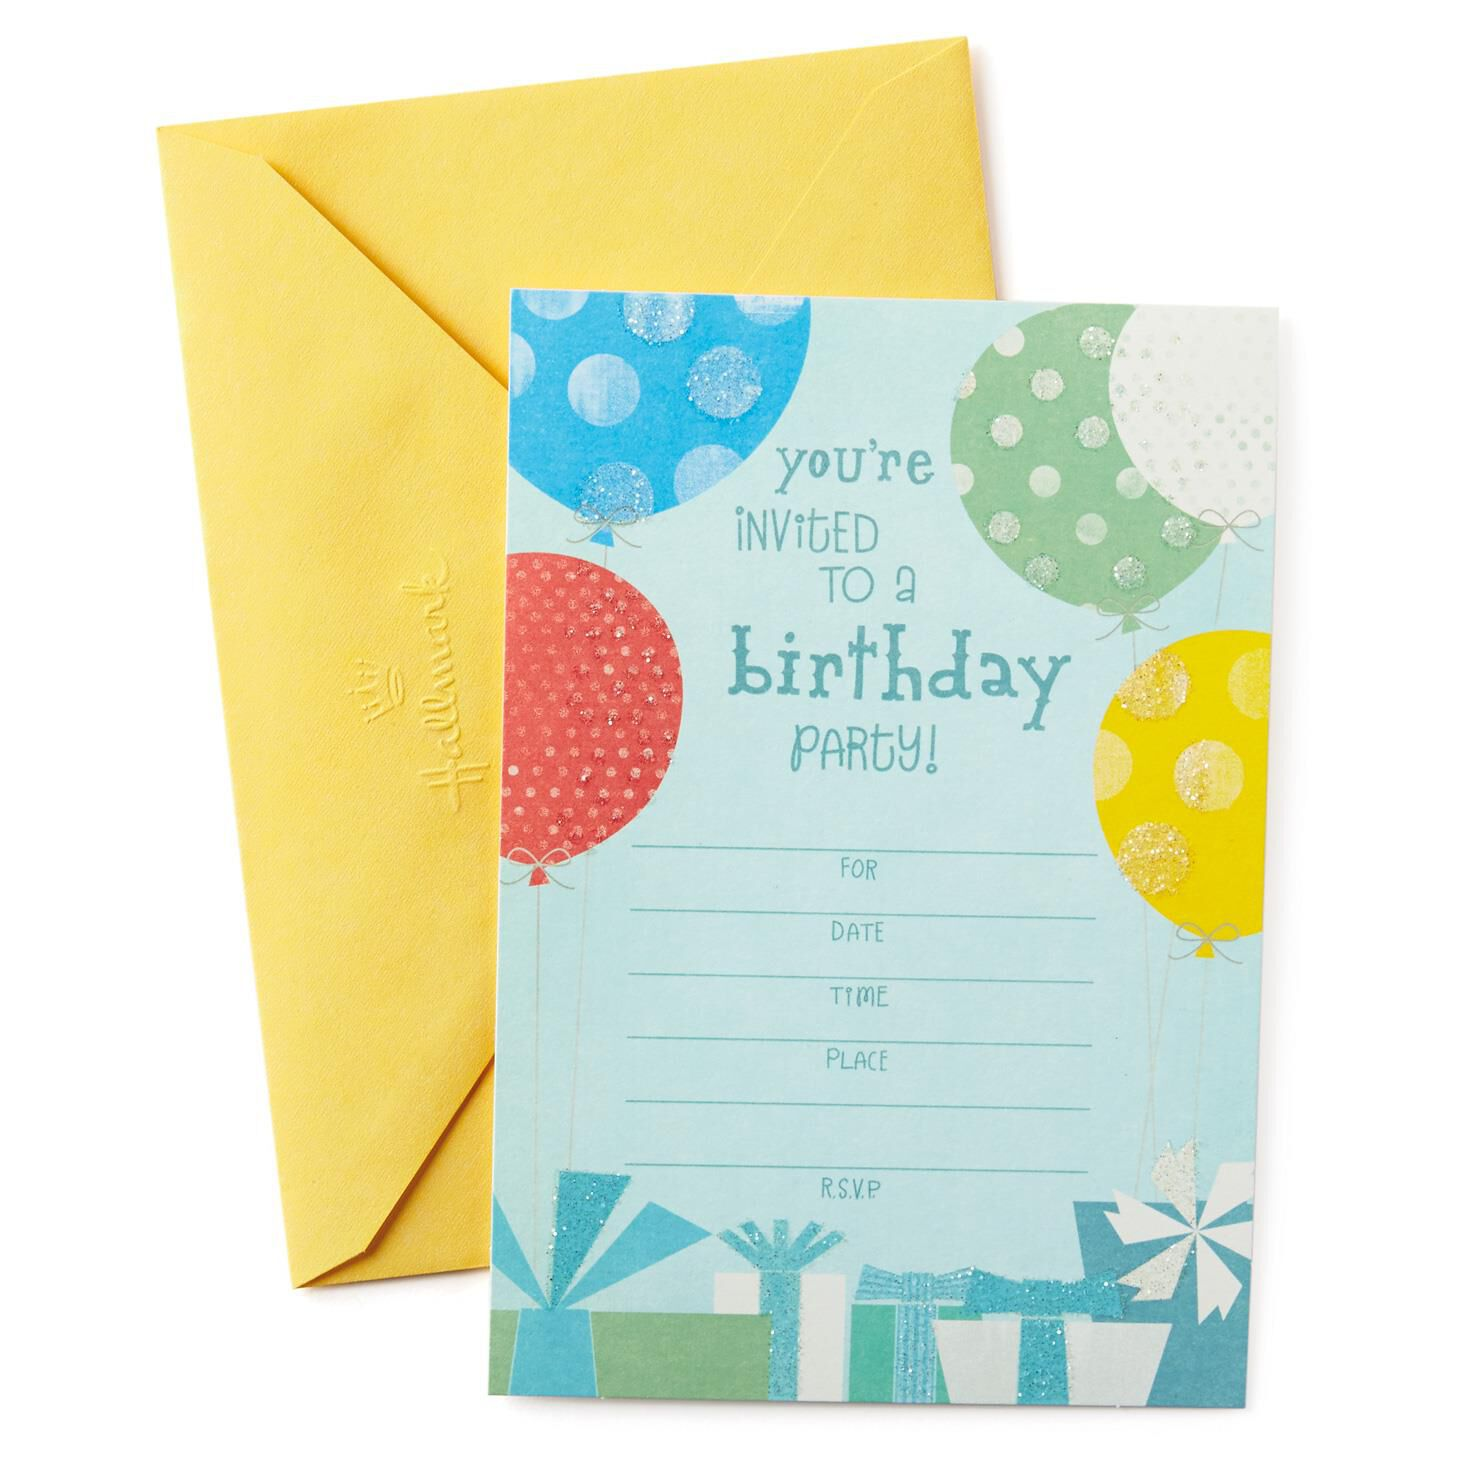 Multicolored Balloons Birthday Party Invitations Pack of 10 – Packs of Party Invitations